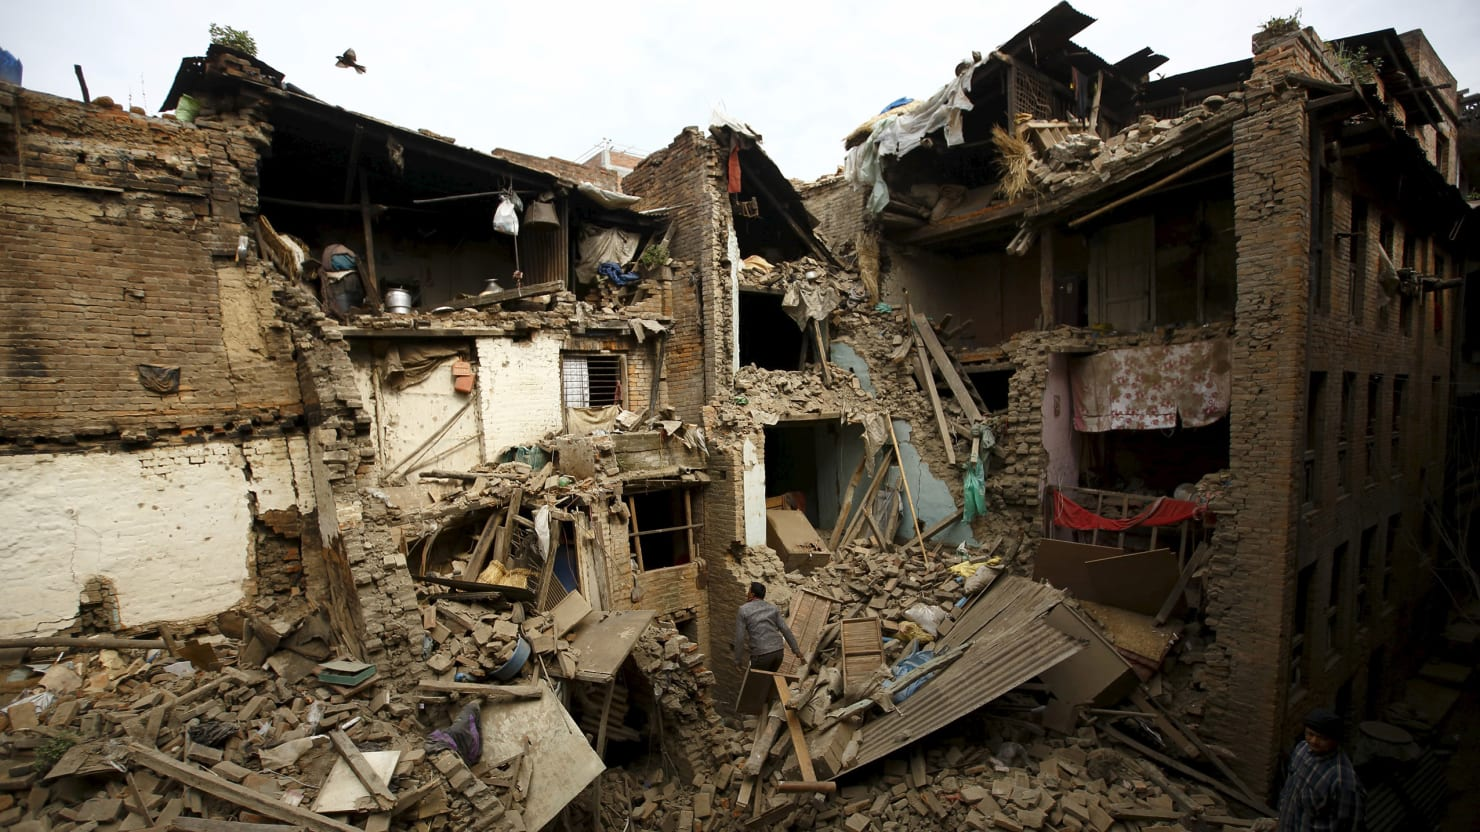 Aftermath of Devastating Earthquake (Photos)